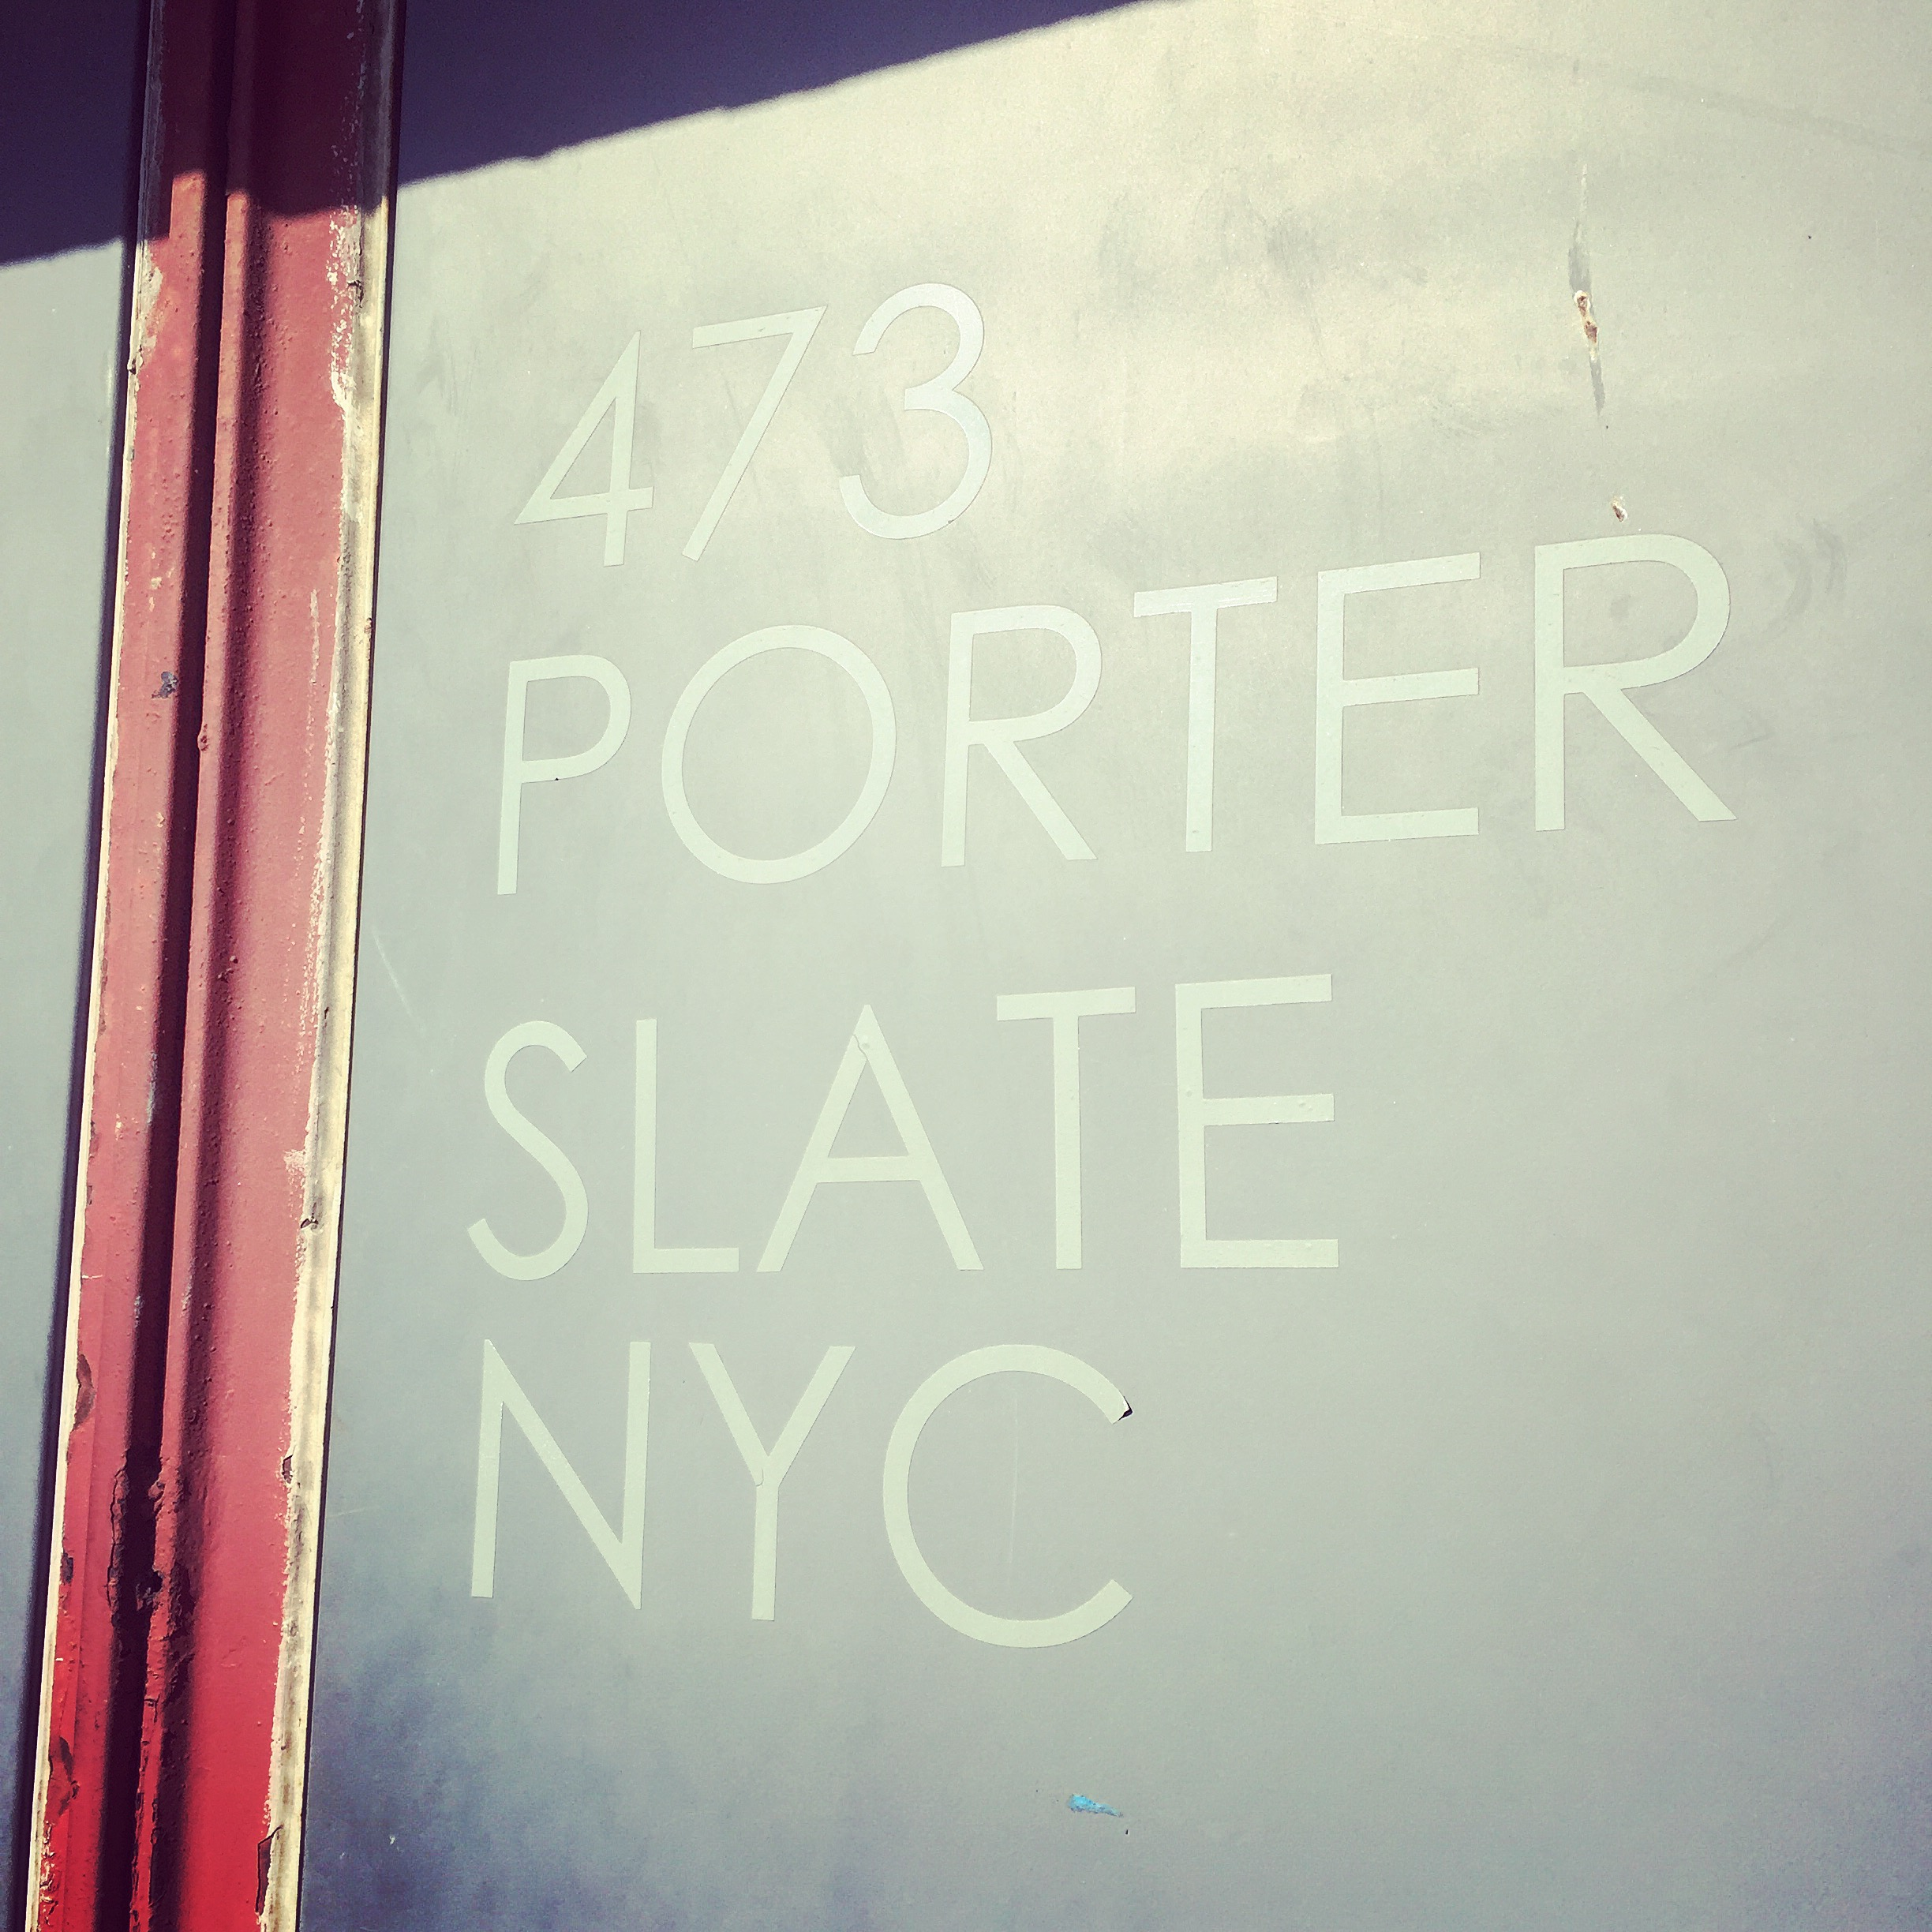 The entrance of Slate's dry cleaning and laundry facility in Greenpoint, Brooklyn.